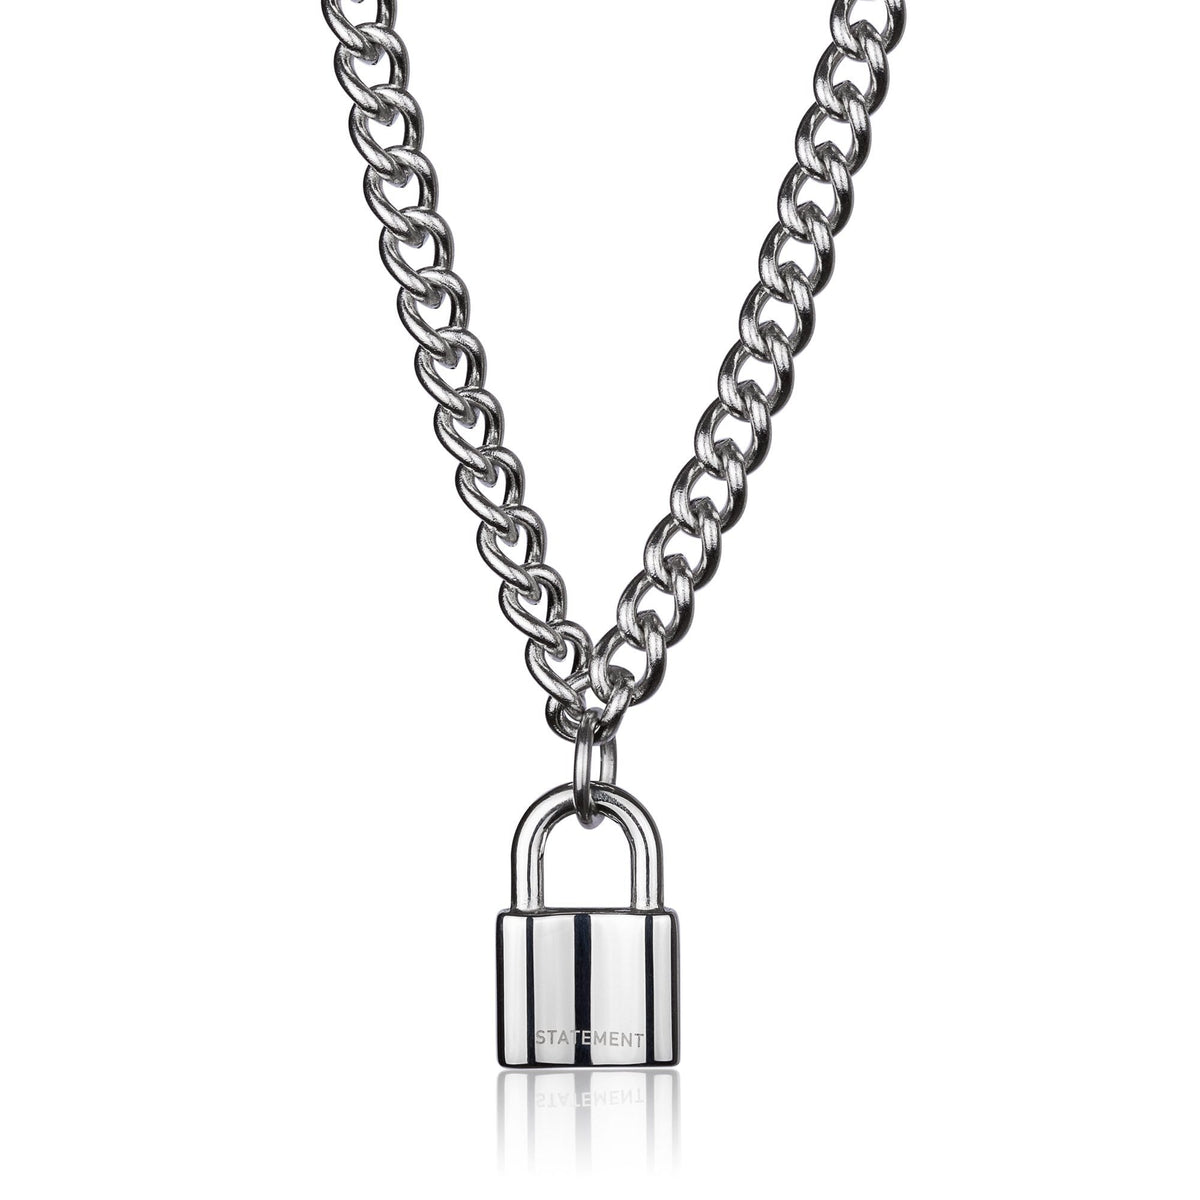 Mini Padlock Necklace - STATEMENT